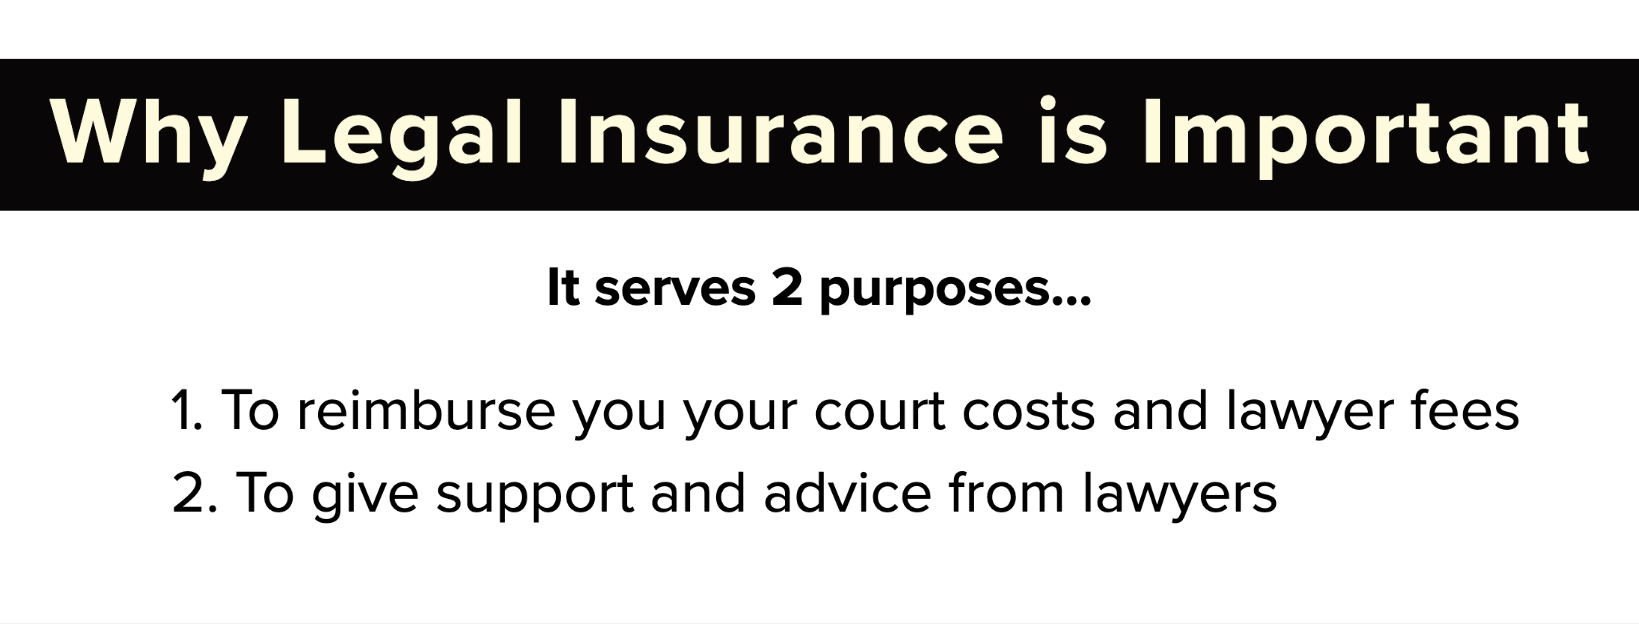 Why legal insurance germany is important - Legal Insurance Germany